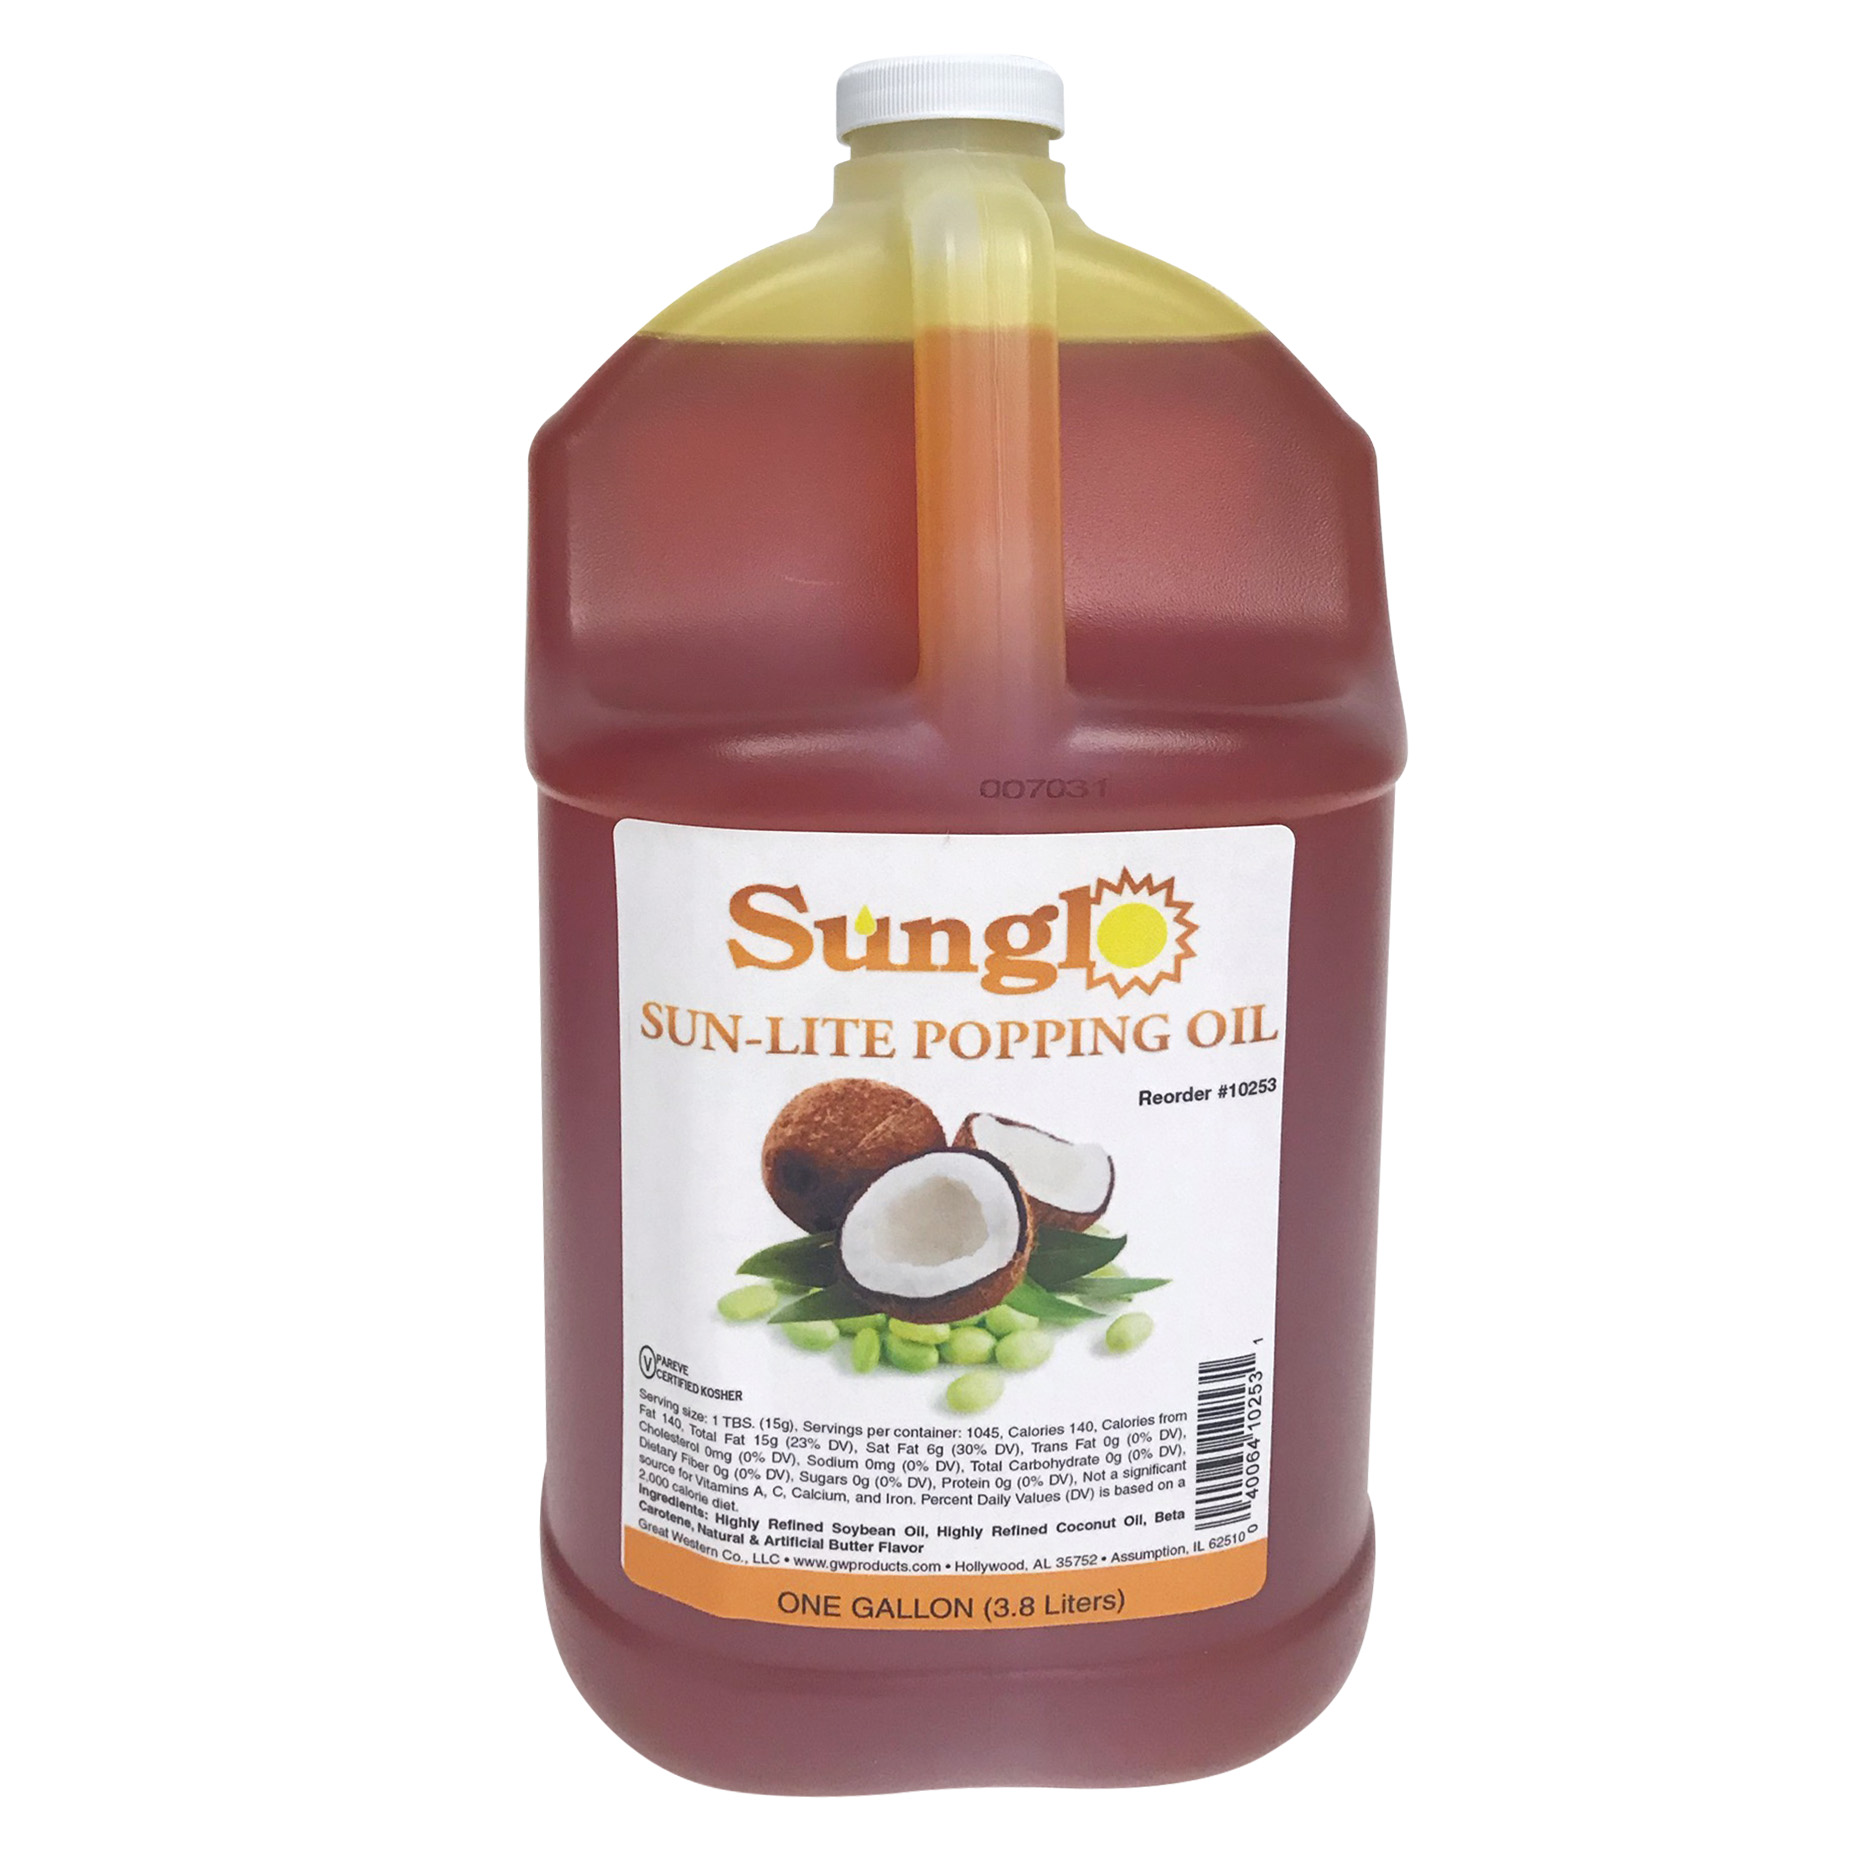 Sunglo Sun-Lite Popping Oil